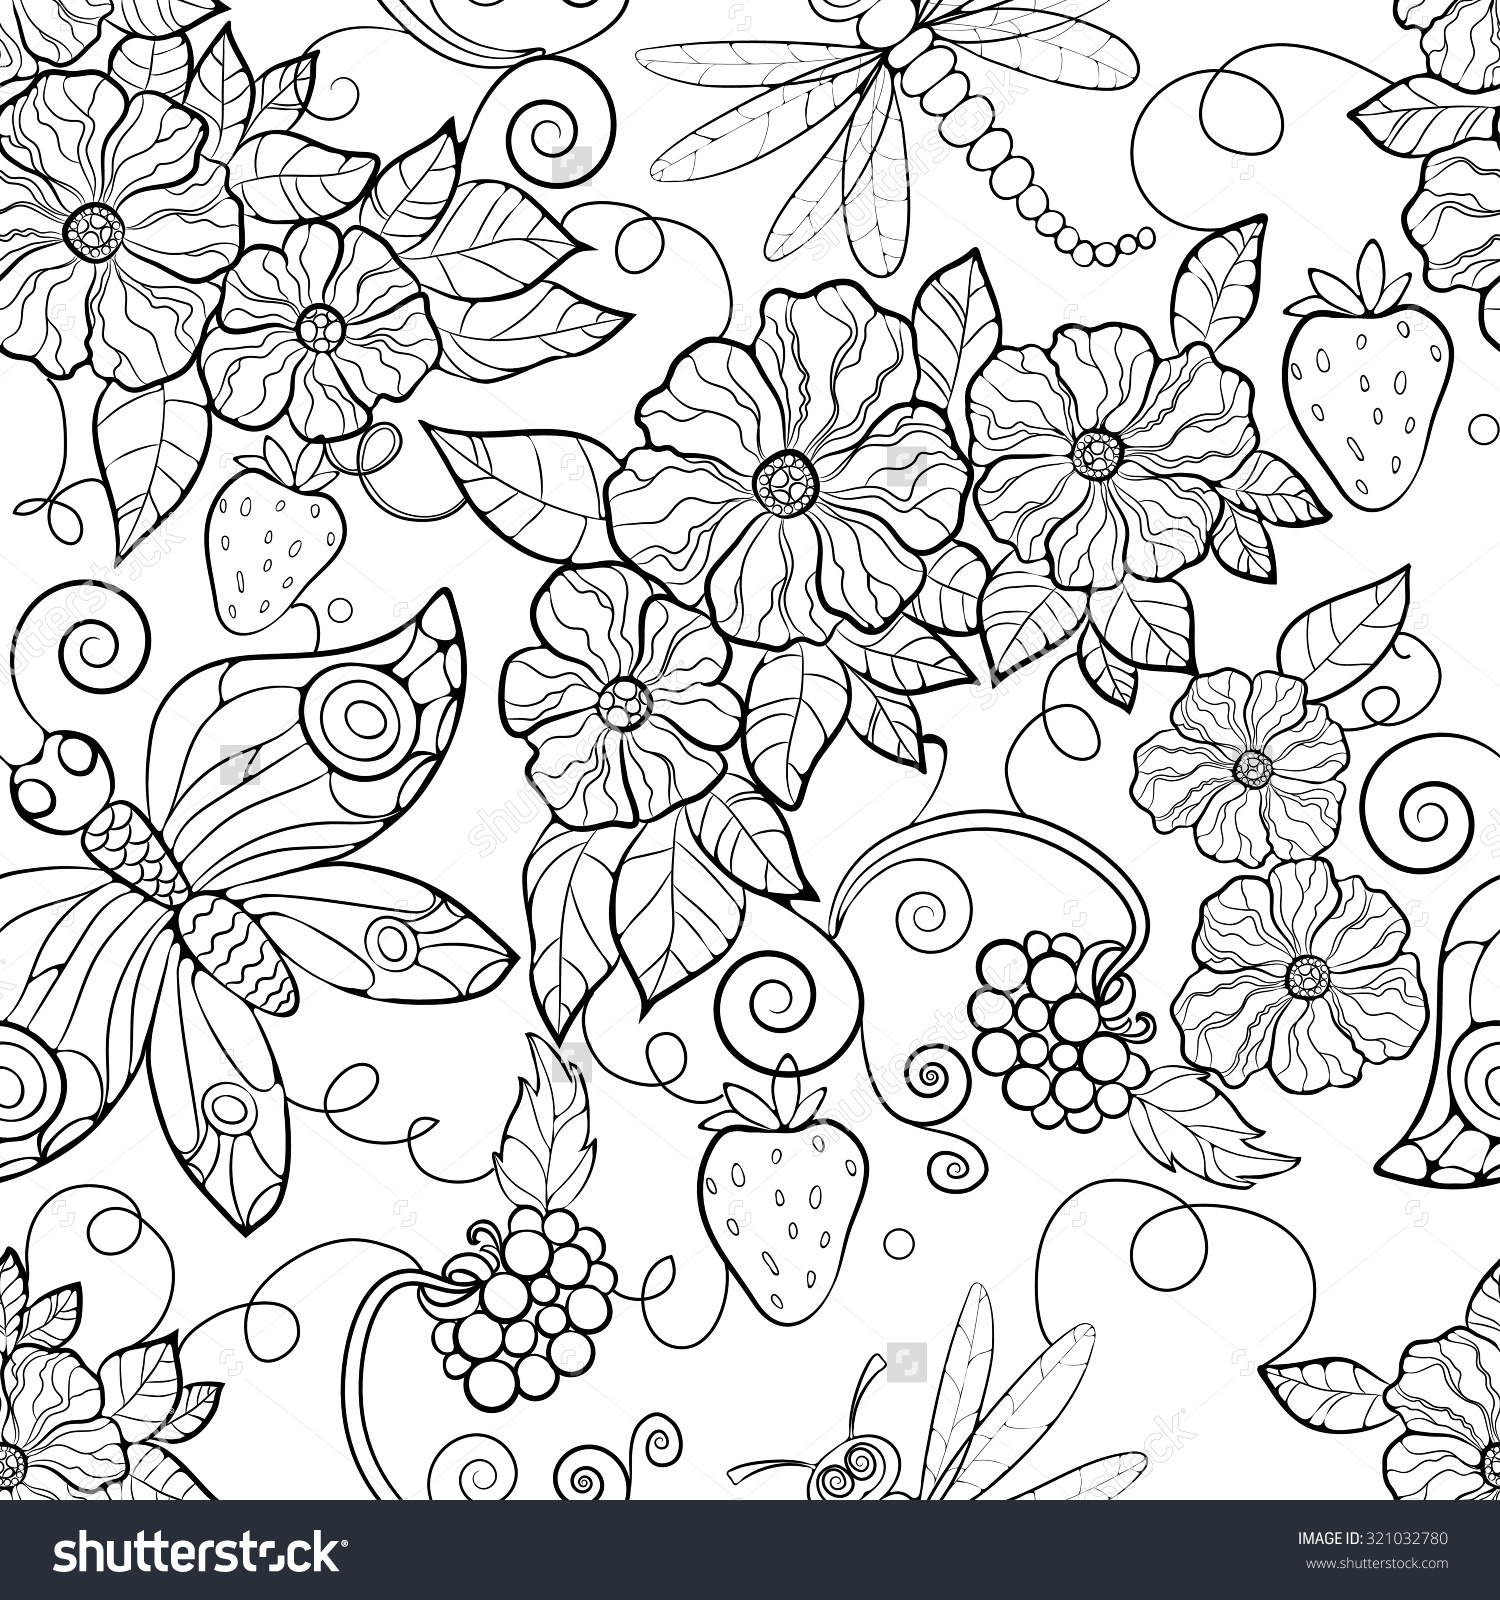 graphic relating to Printable Flower Coloring Pages identify No cost Printable Flower Coloring Webpages For Grownups at